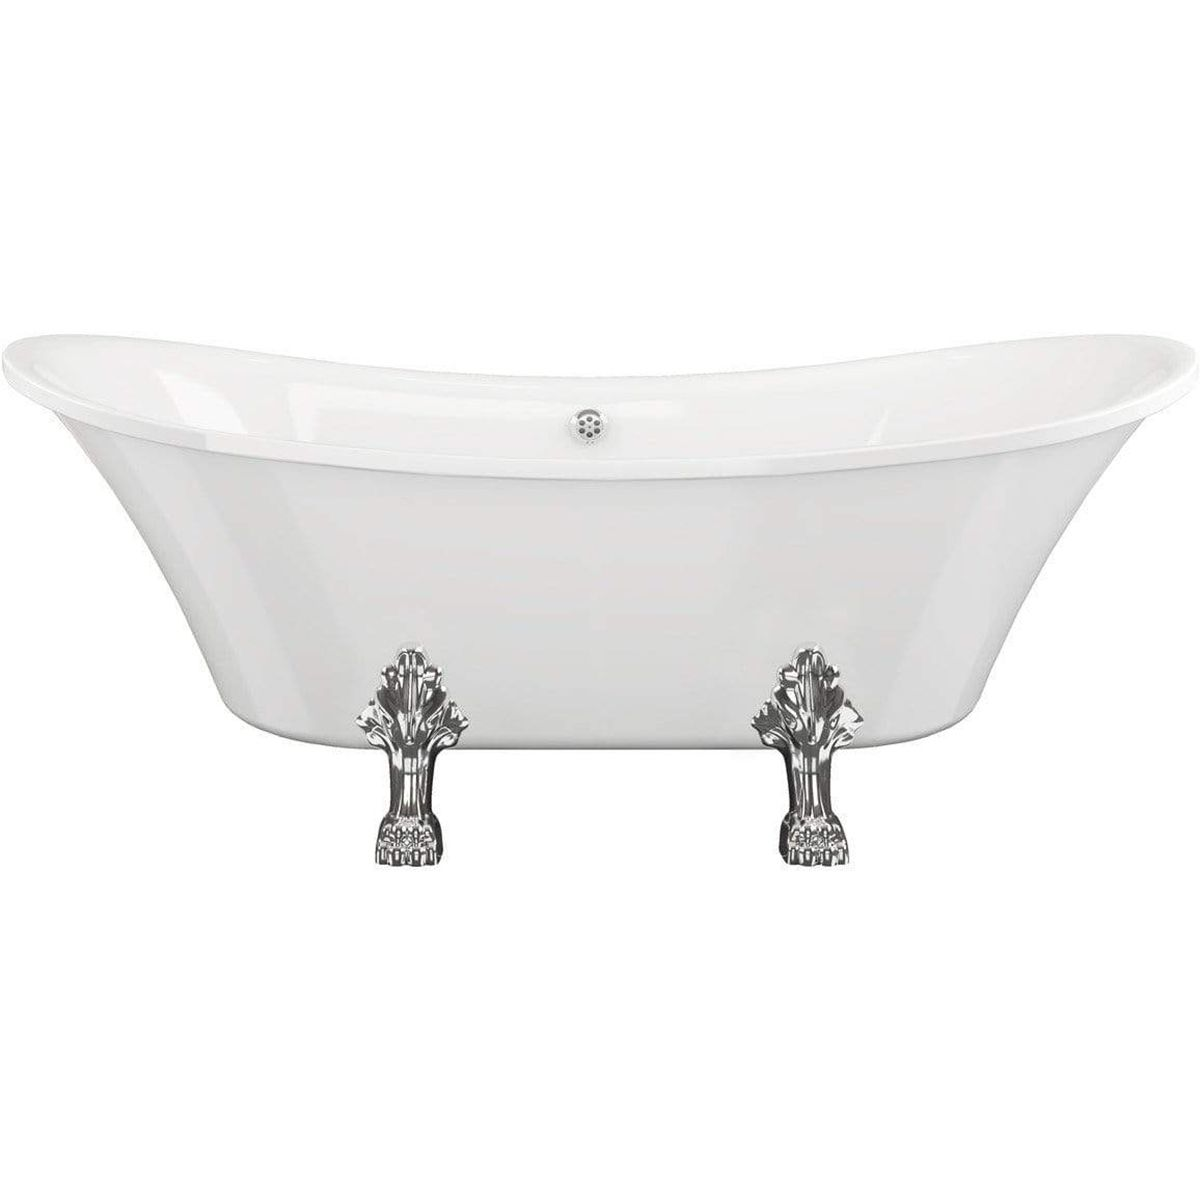 Bathrooms To Love Traditional Slim Freestanding Bath with Feet 1760mm x 710mm 1